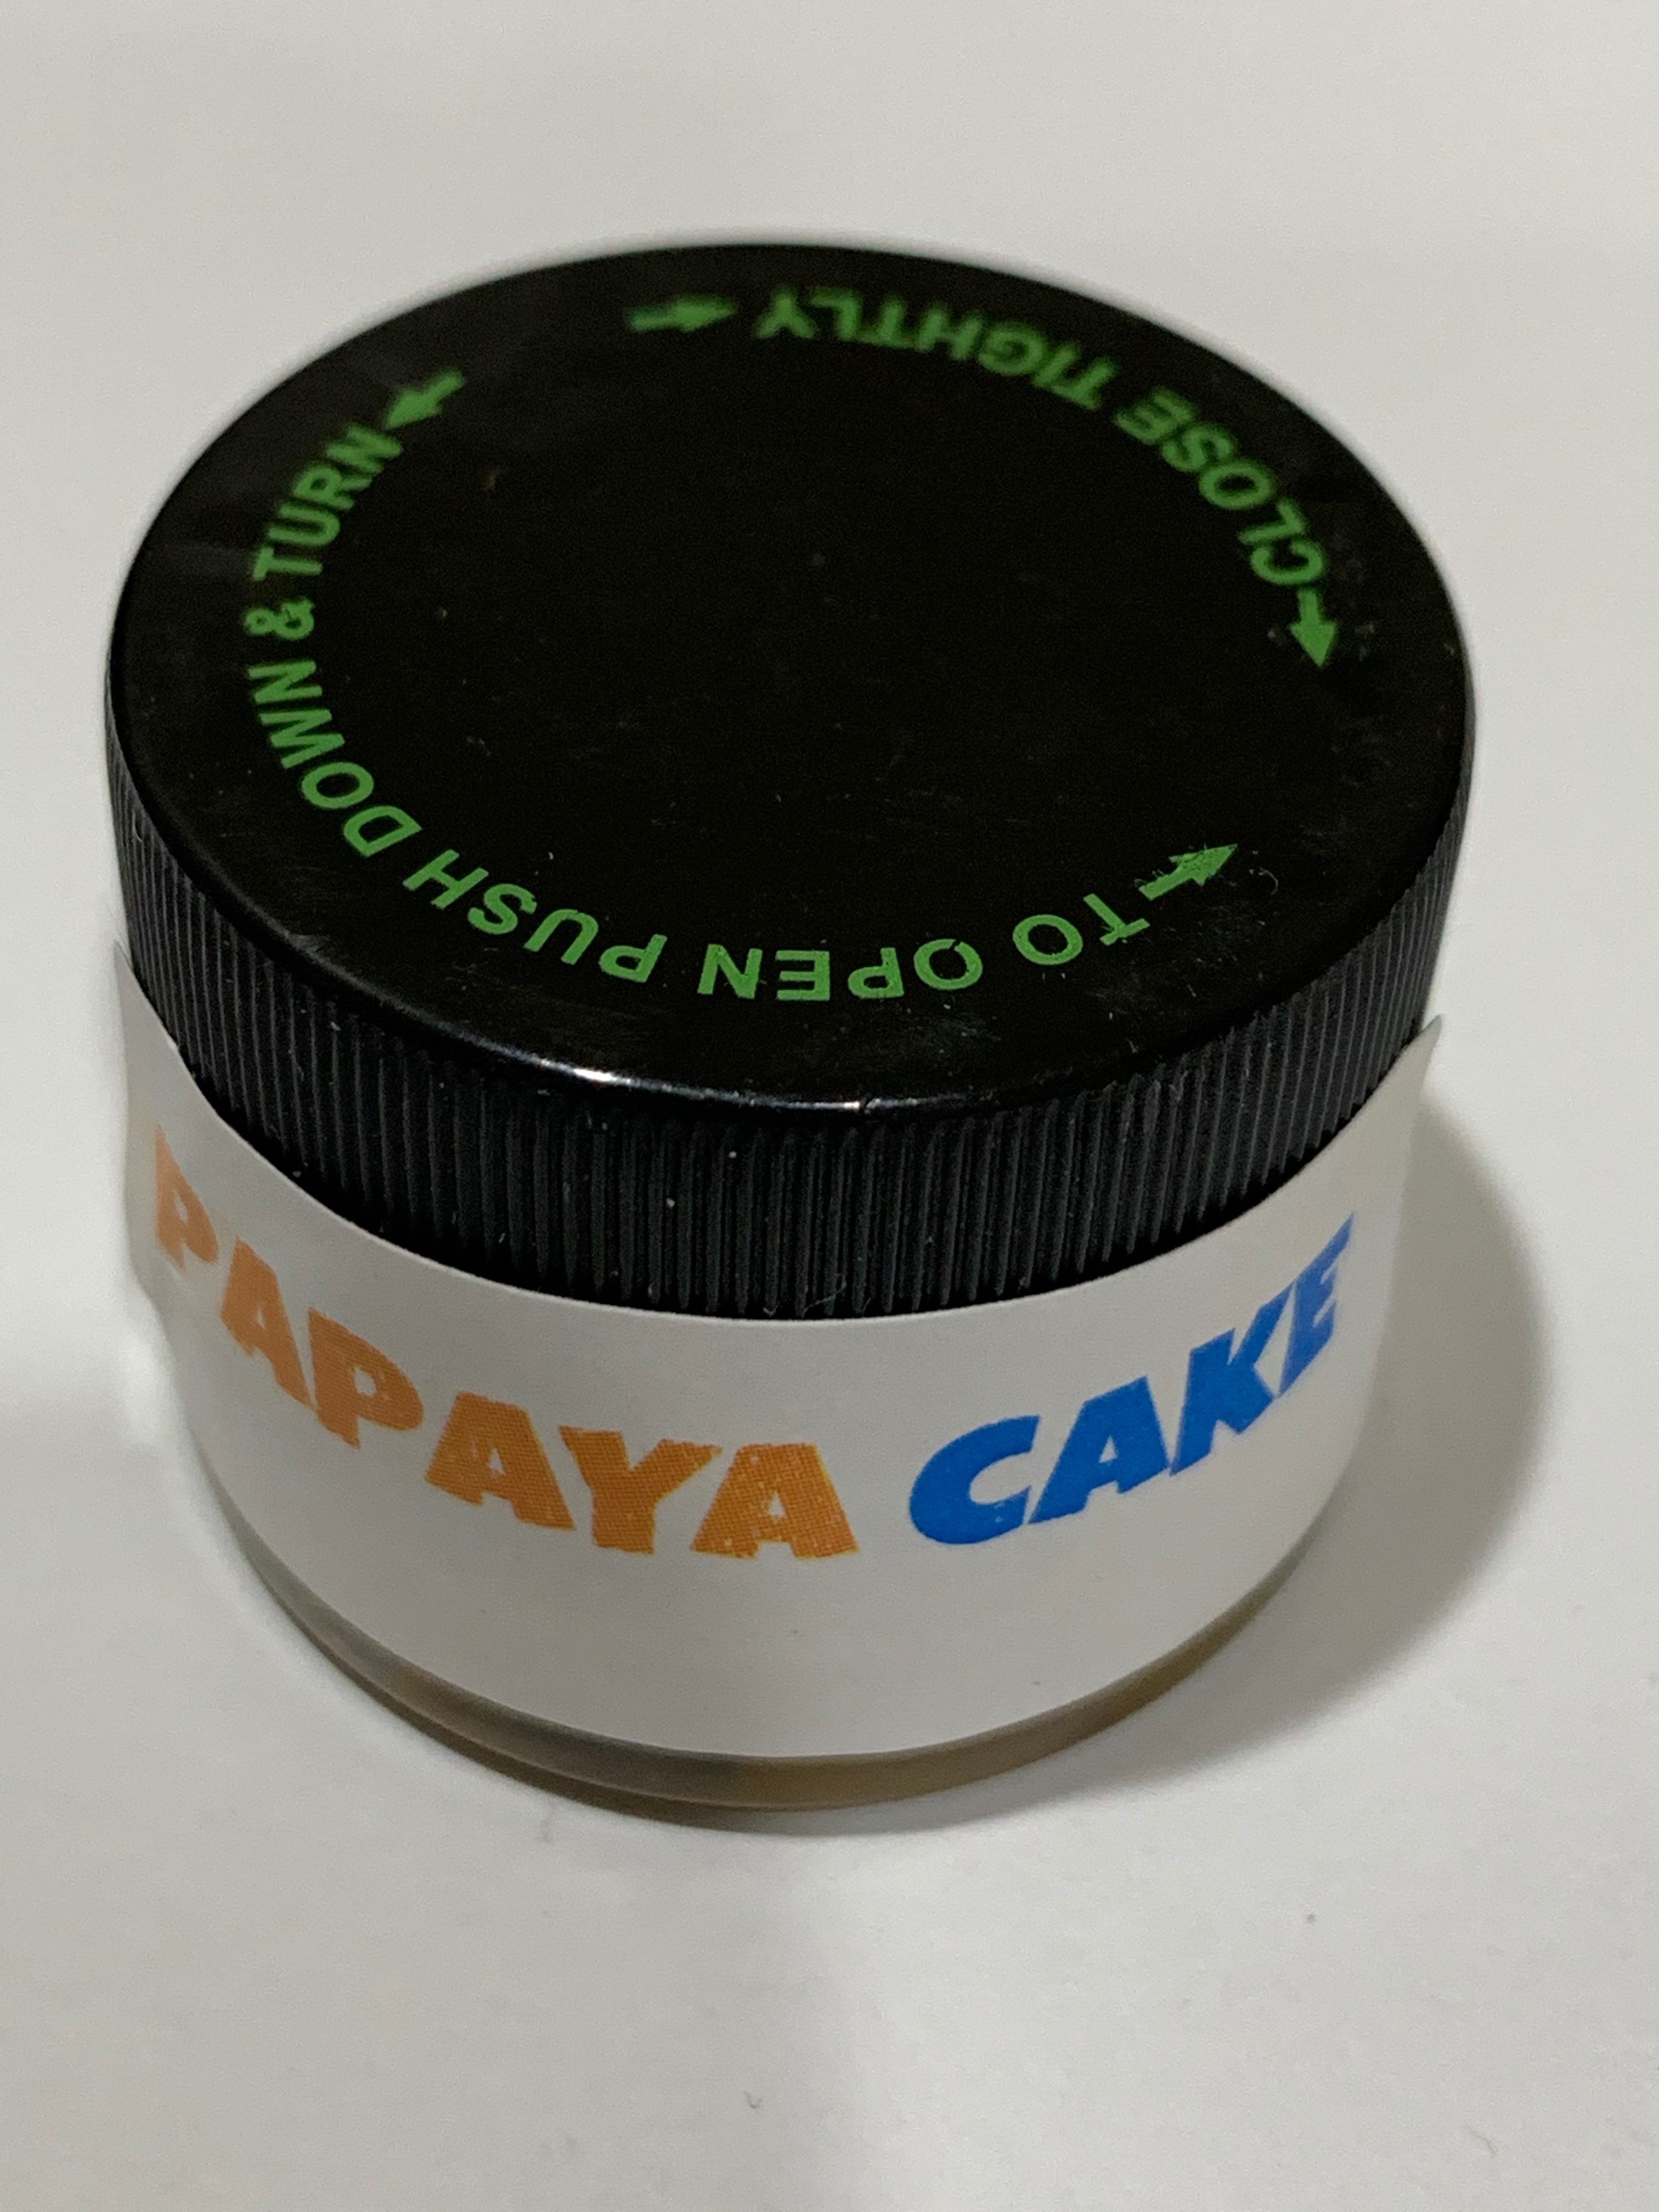 BADDER  - PAPAYA CAKE  Product Image